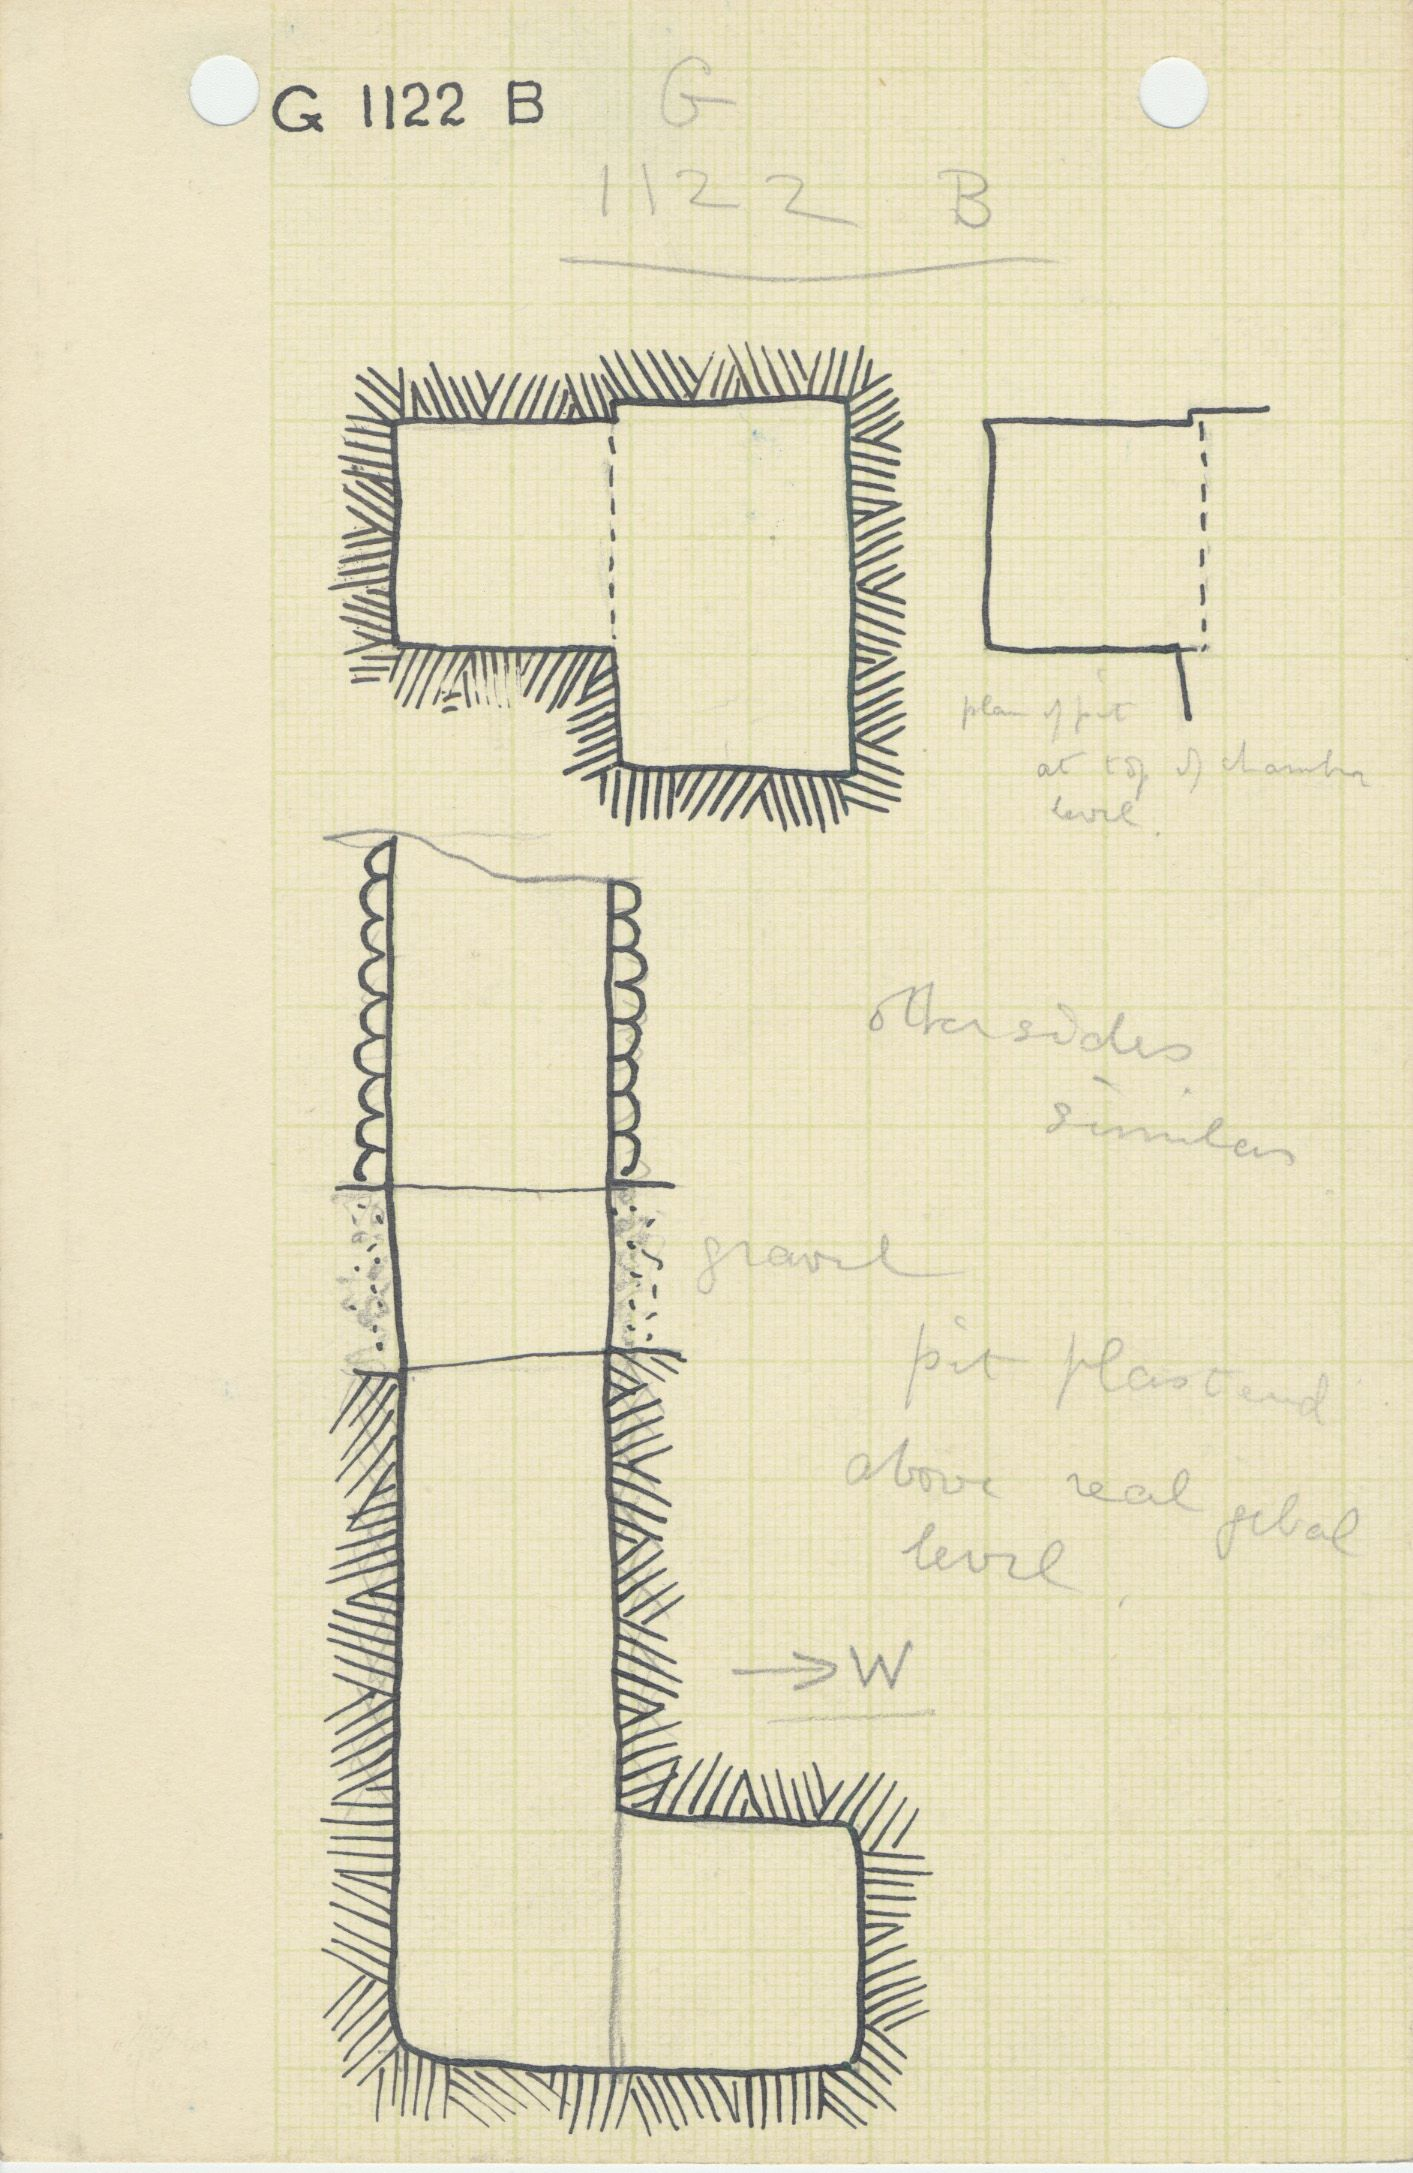 Maps and plans: G 1122, Shaft B